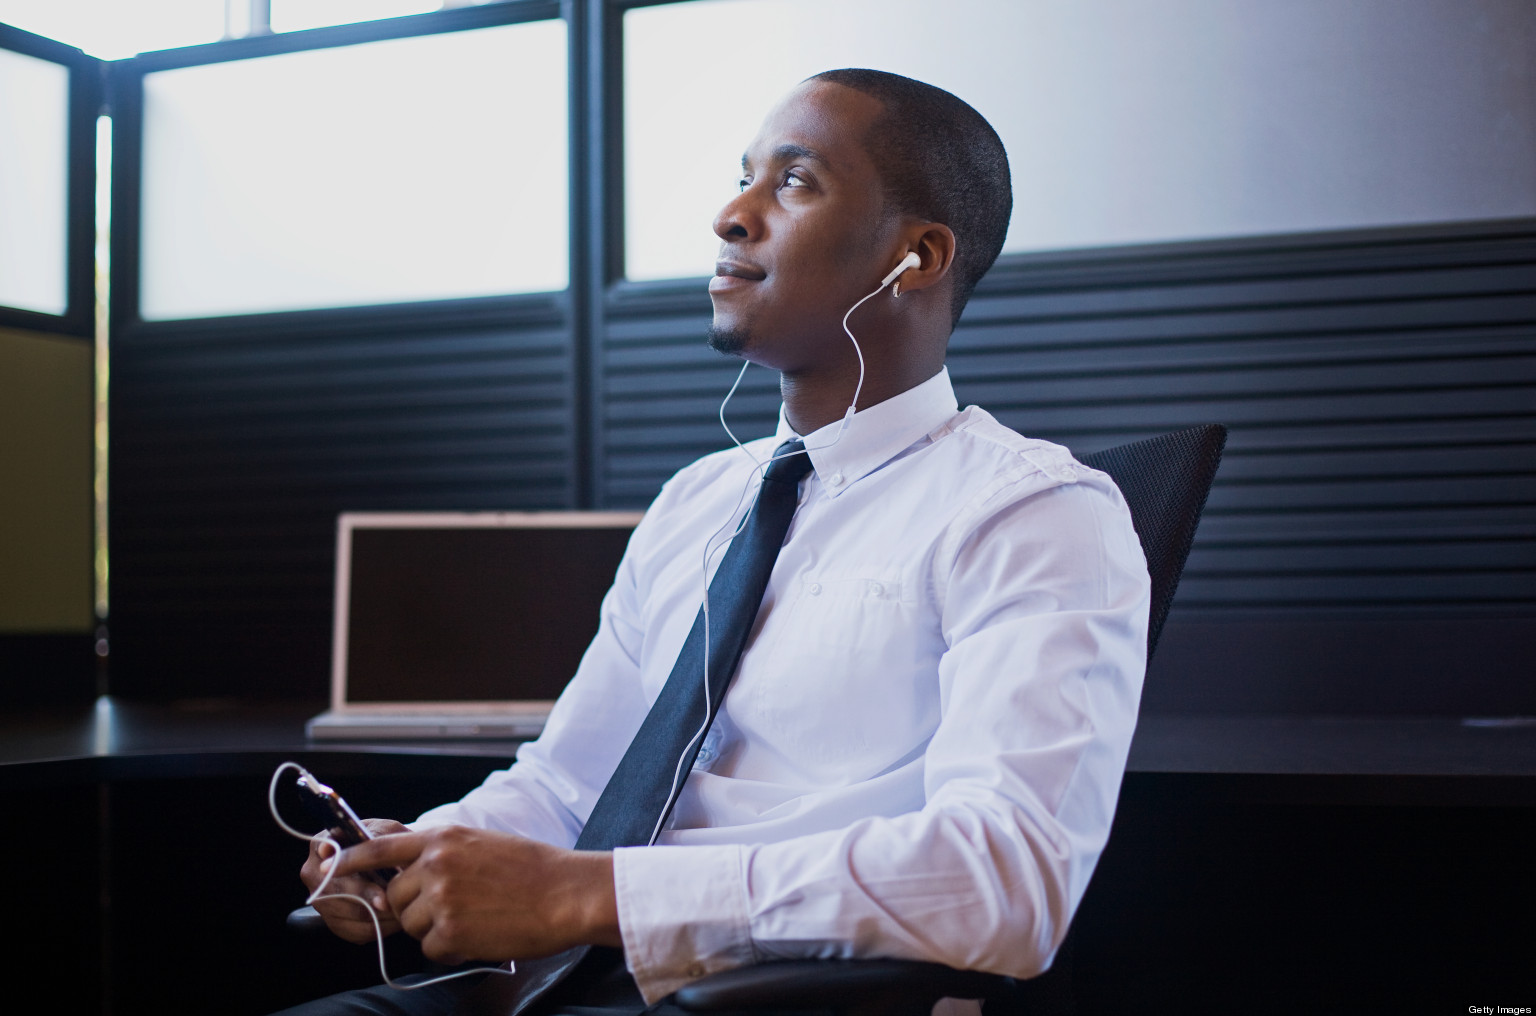 Image result for black man listening to music